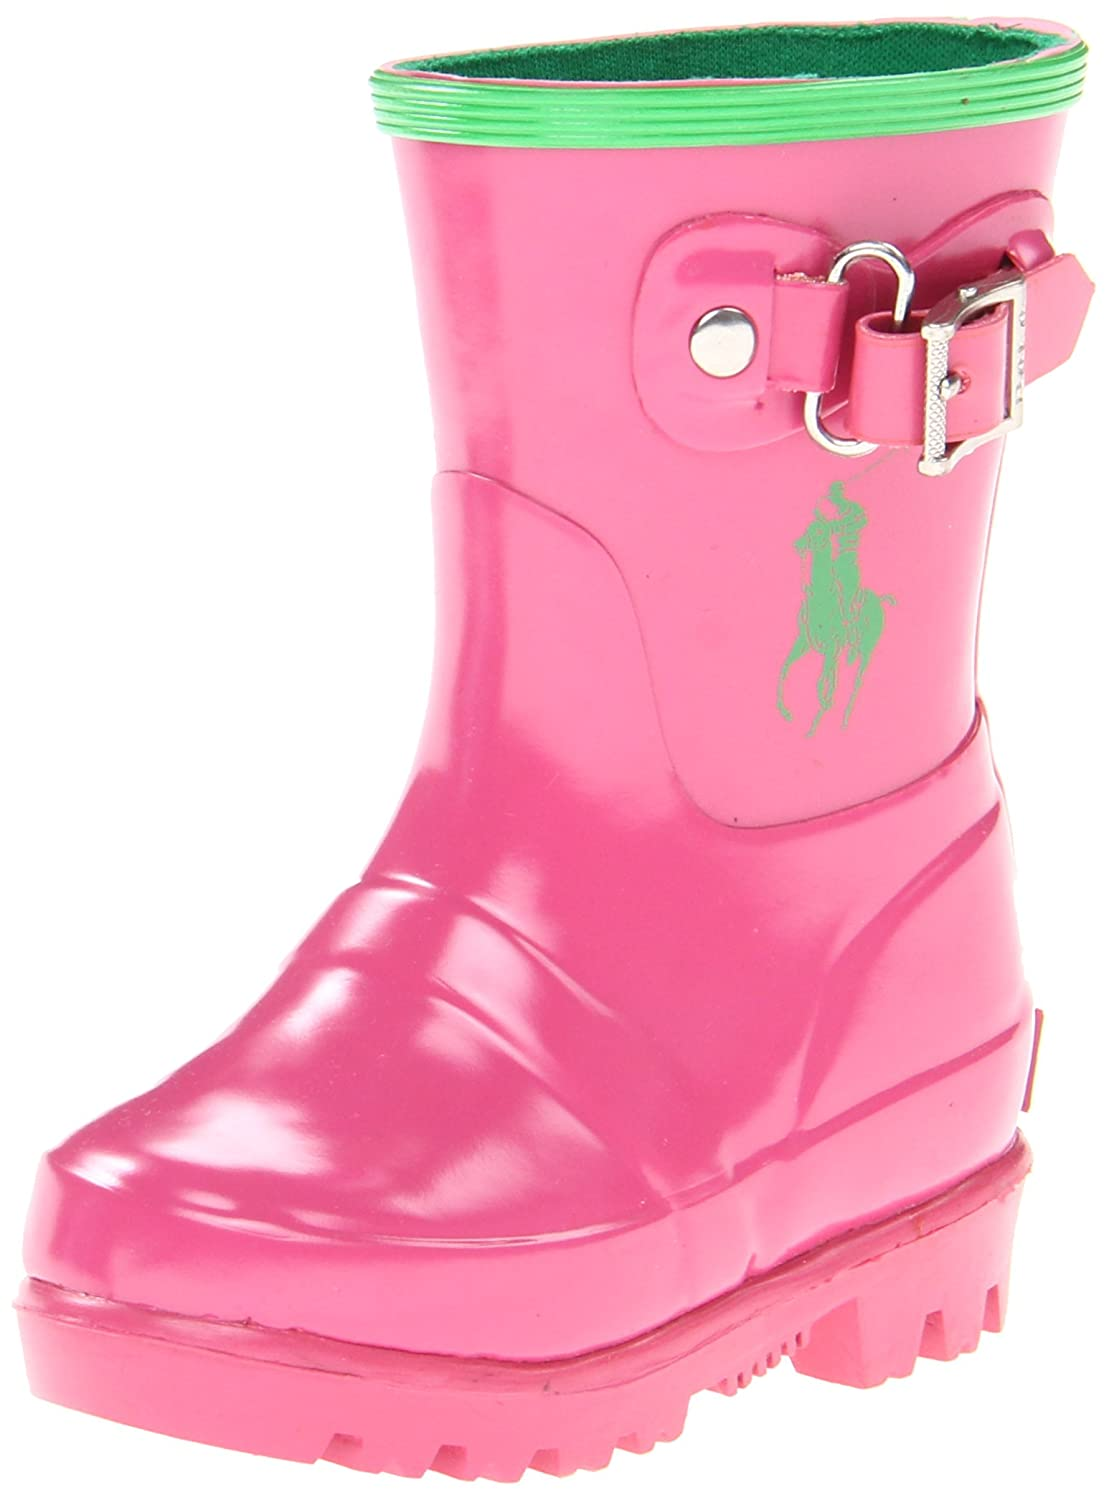 Polo by Ralph Lauren Ralph Rain Boot (Toddler/Little Kid/Big Kid)